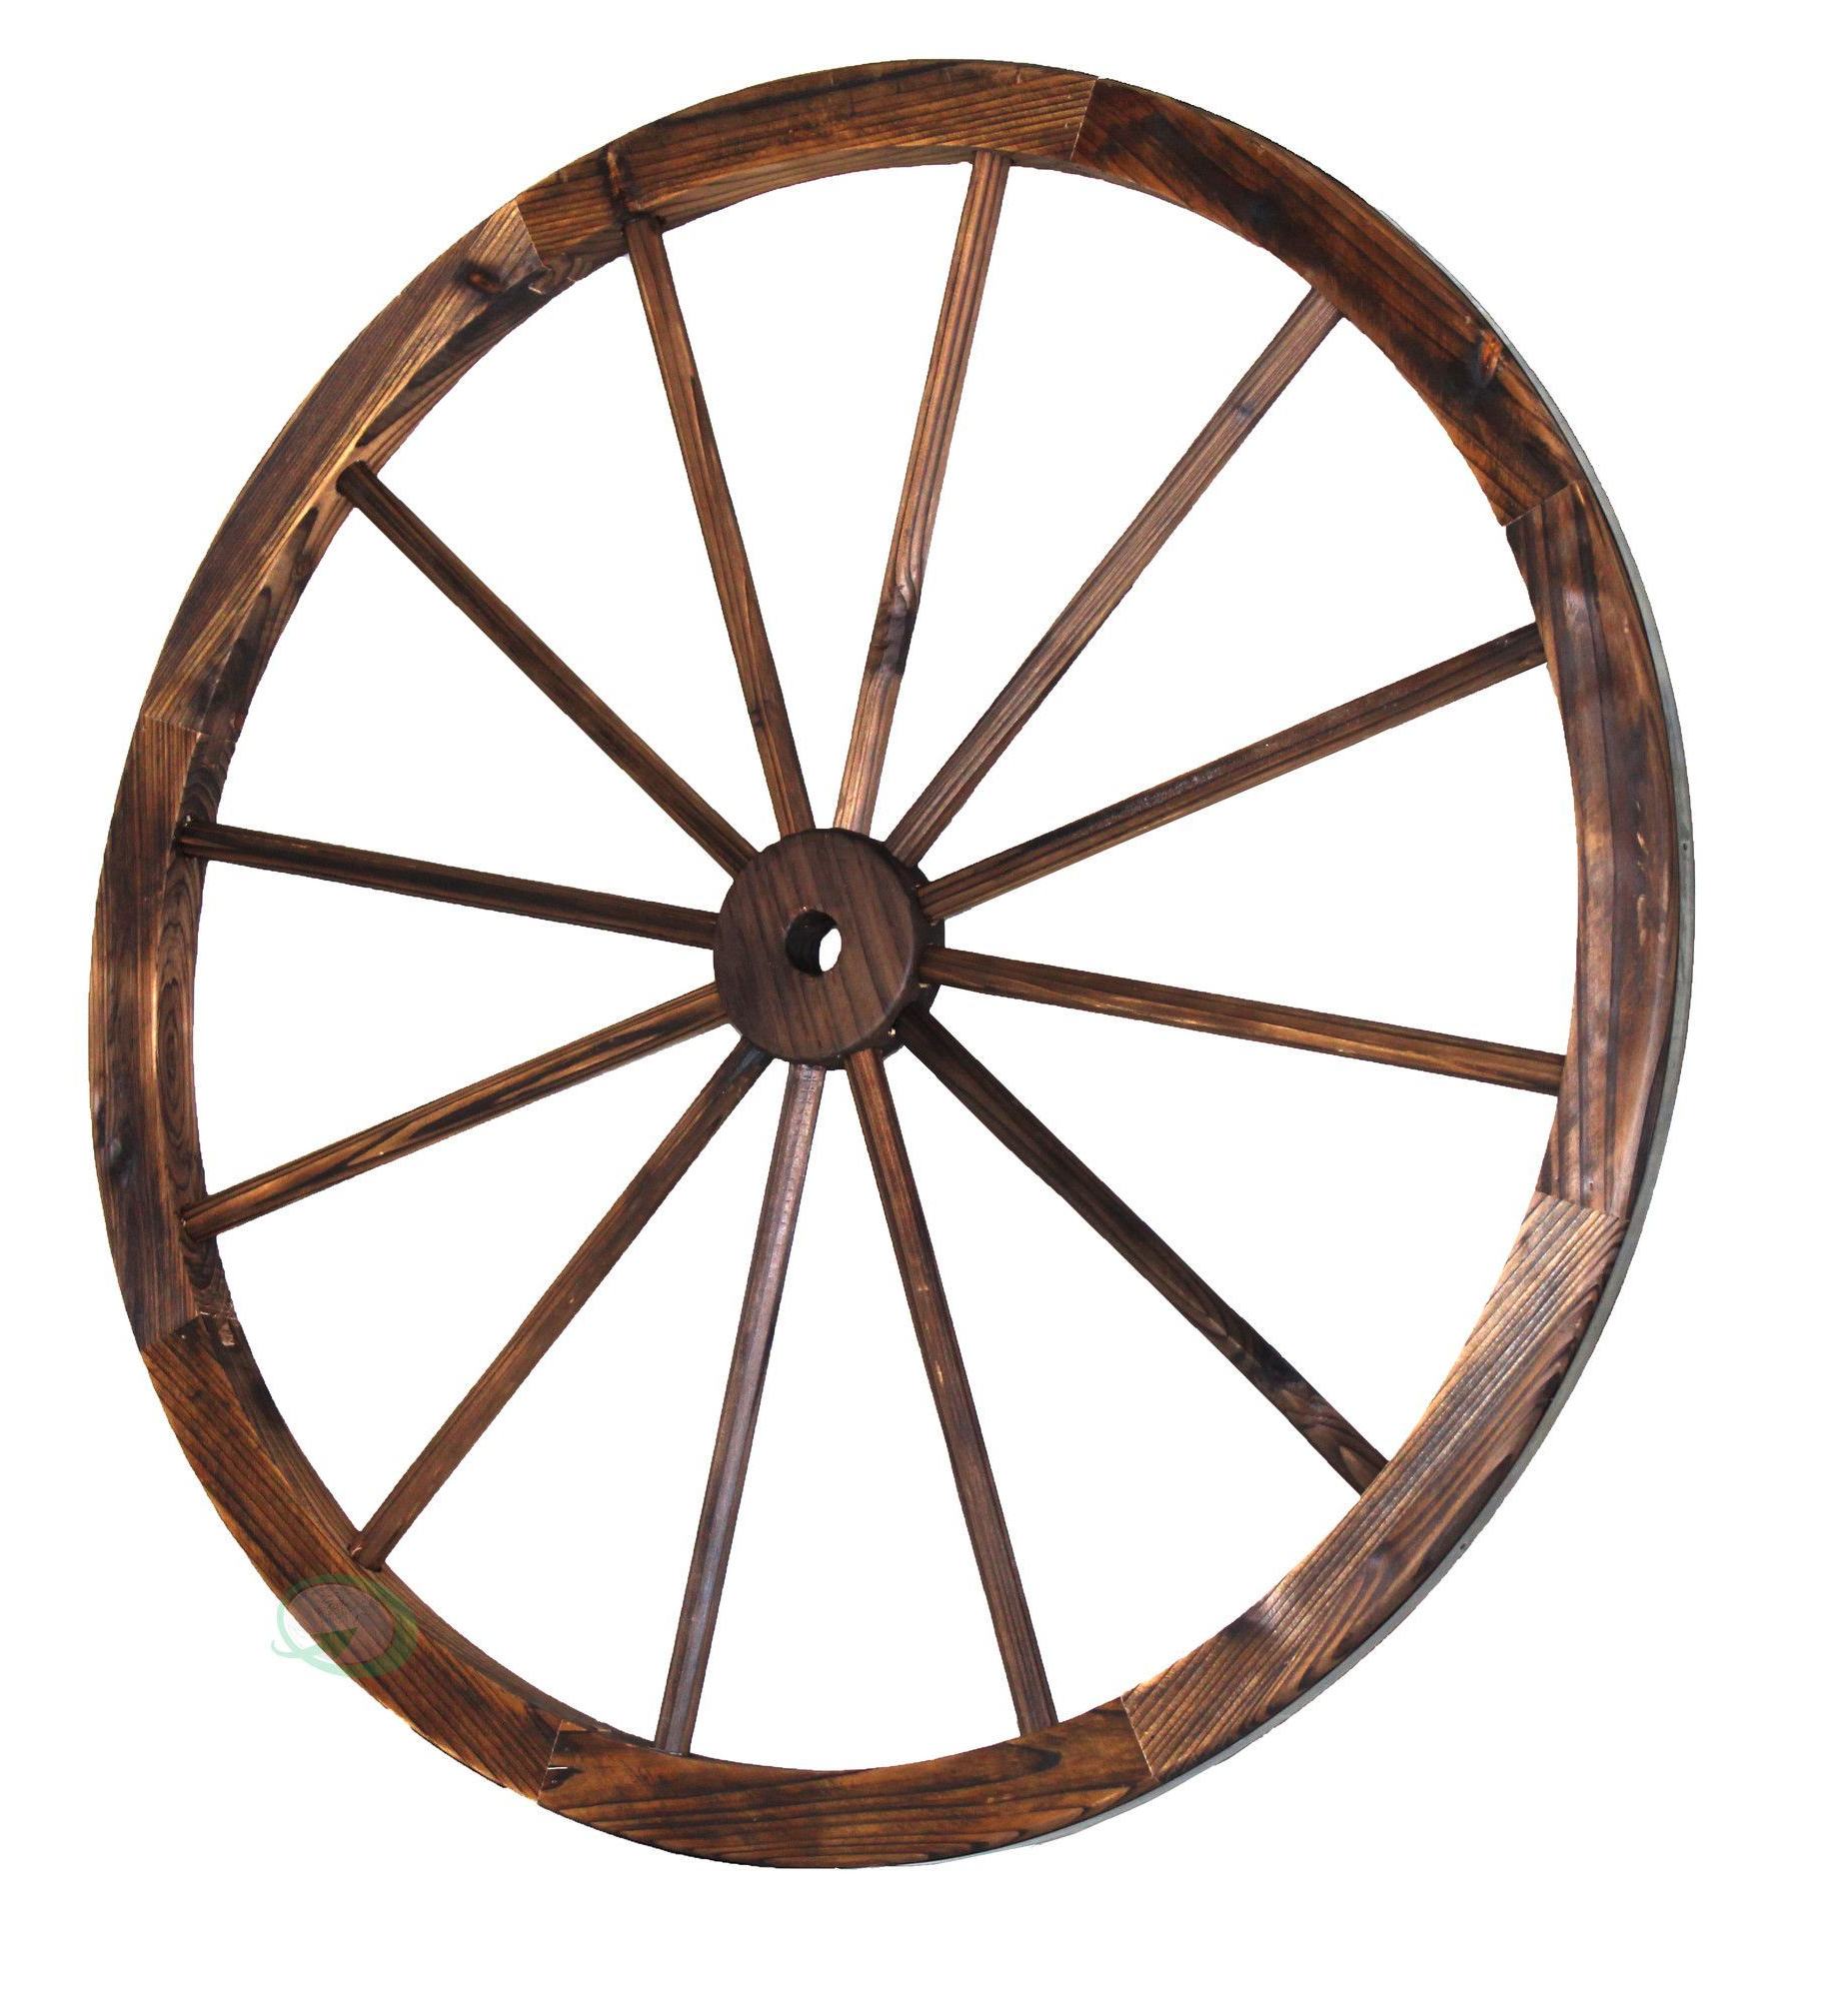 Wagon Wheel Decor, Wall (View 15 of 20)